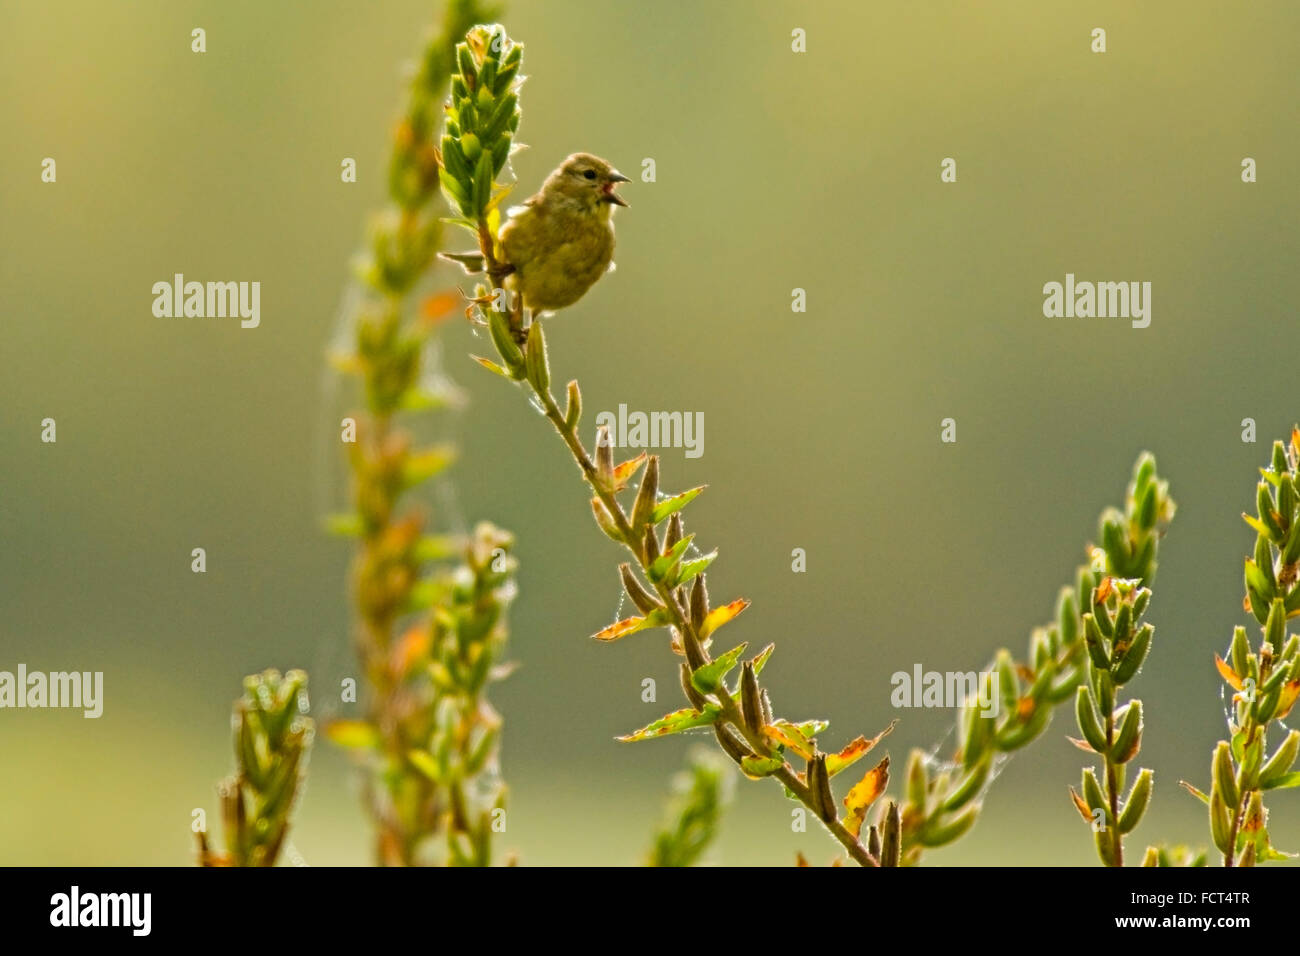 A Nashville warbler (Oreothlypis ruficapilla), singing on the branch of a wild flower. - Stock Image